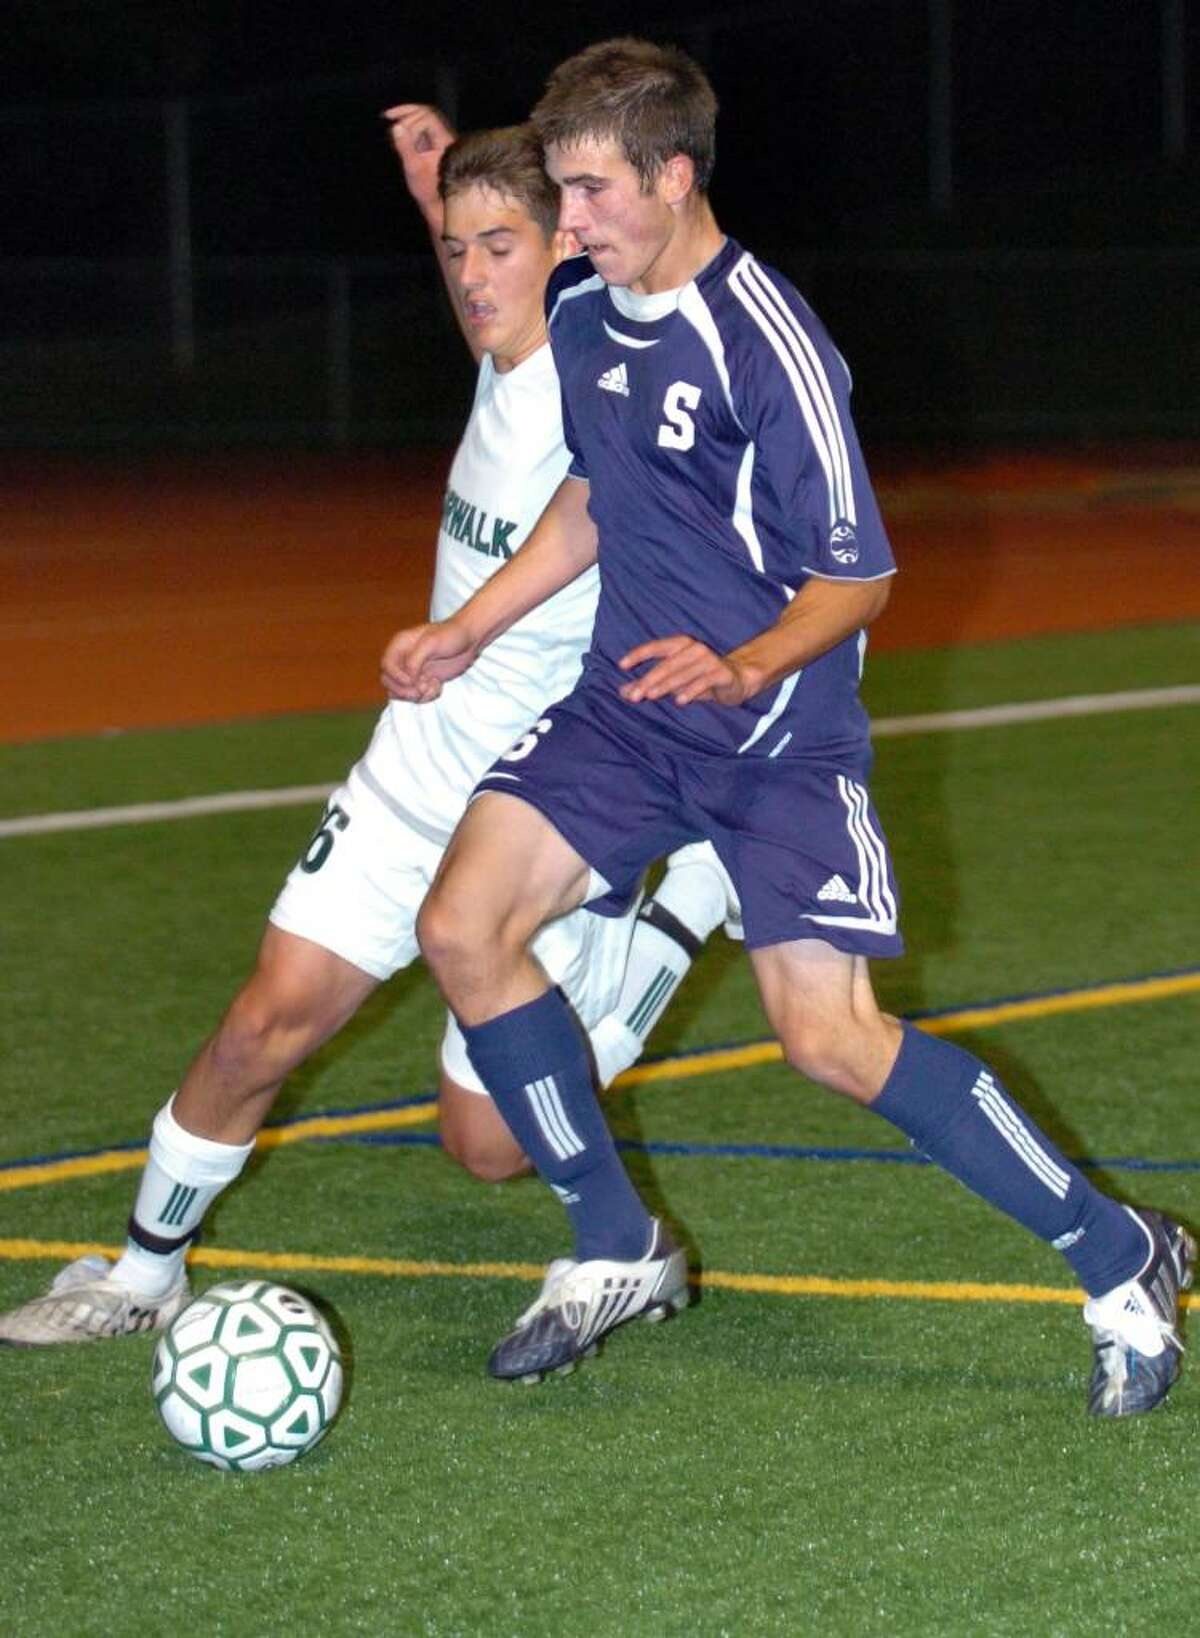 Norwalk's Sean Whitteaker, left, and Staples' Sean Gallagher battle for control of the ball during the first half of Tuesday night's game in Norwalk.